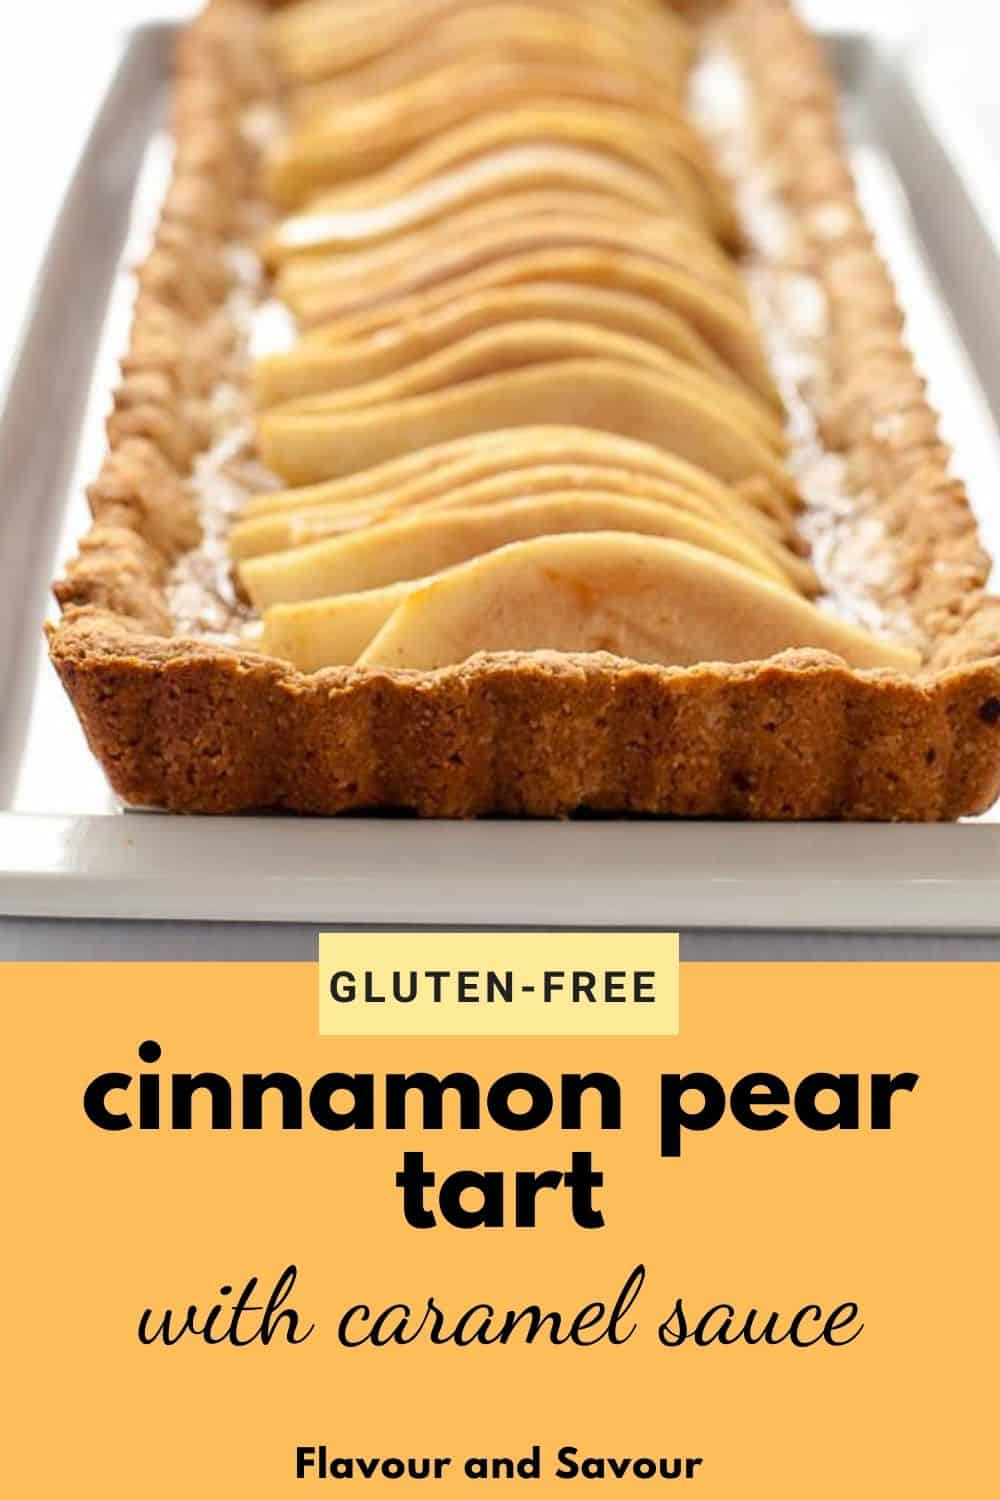 Pinterest graphic for Gluten-free Cinnamon Pear Tart with Caramel Sauce